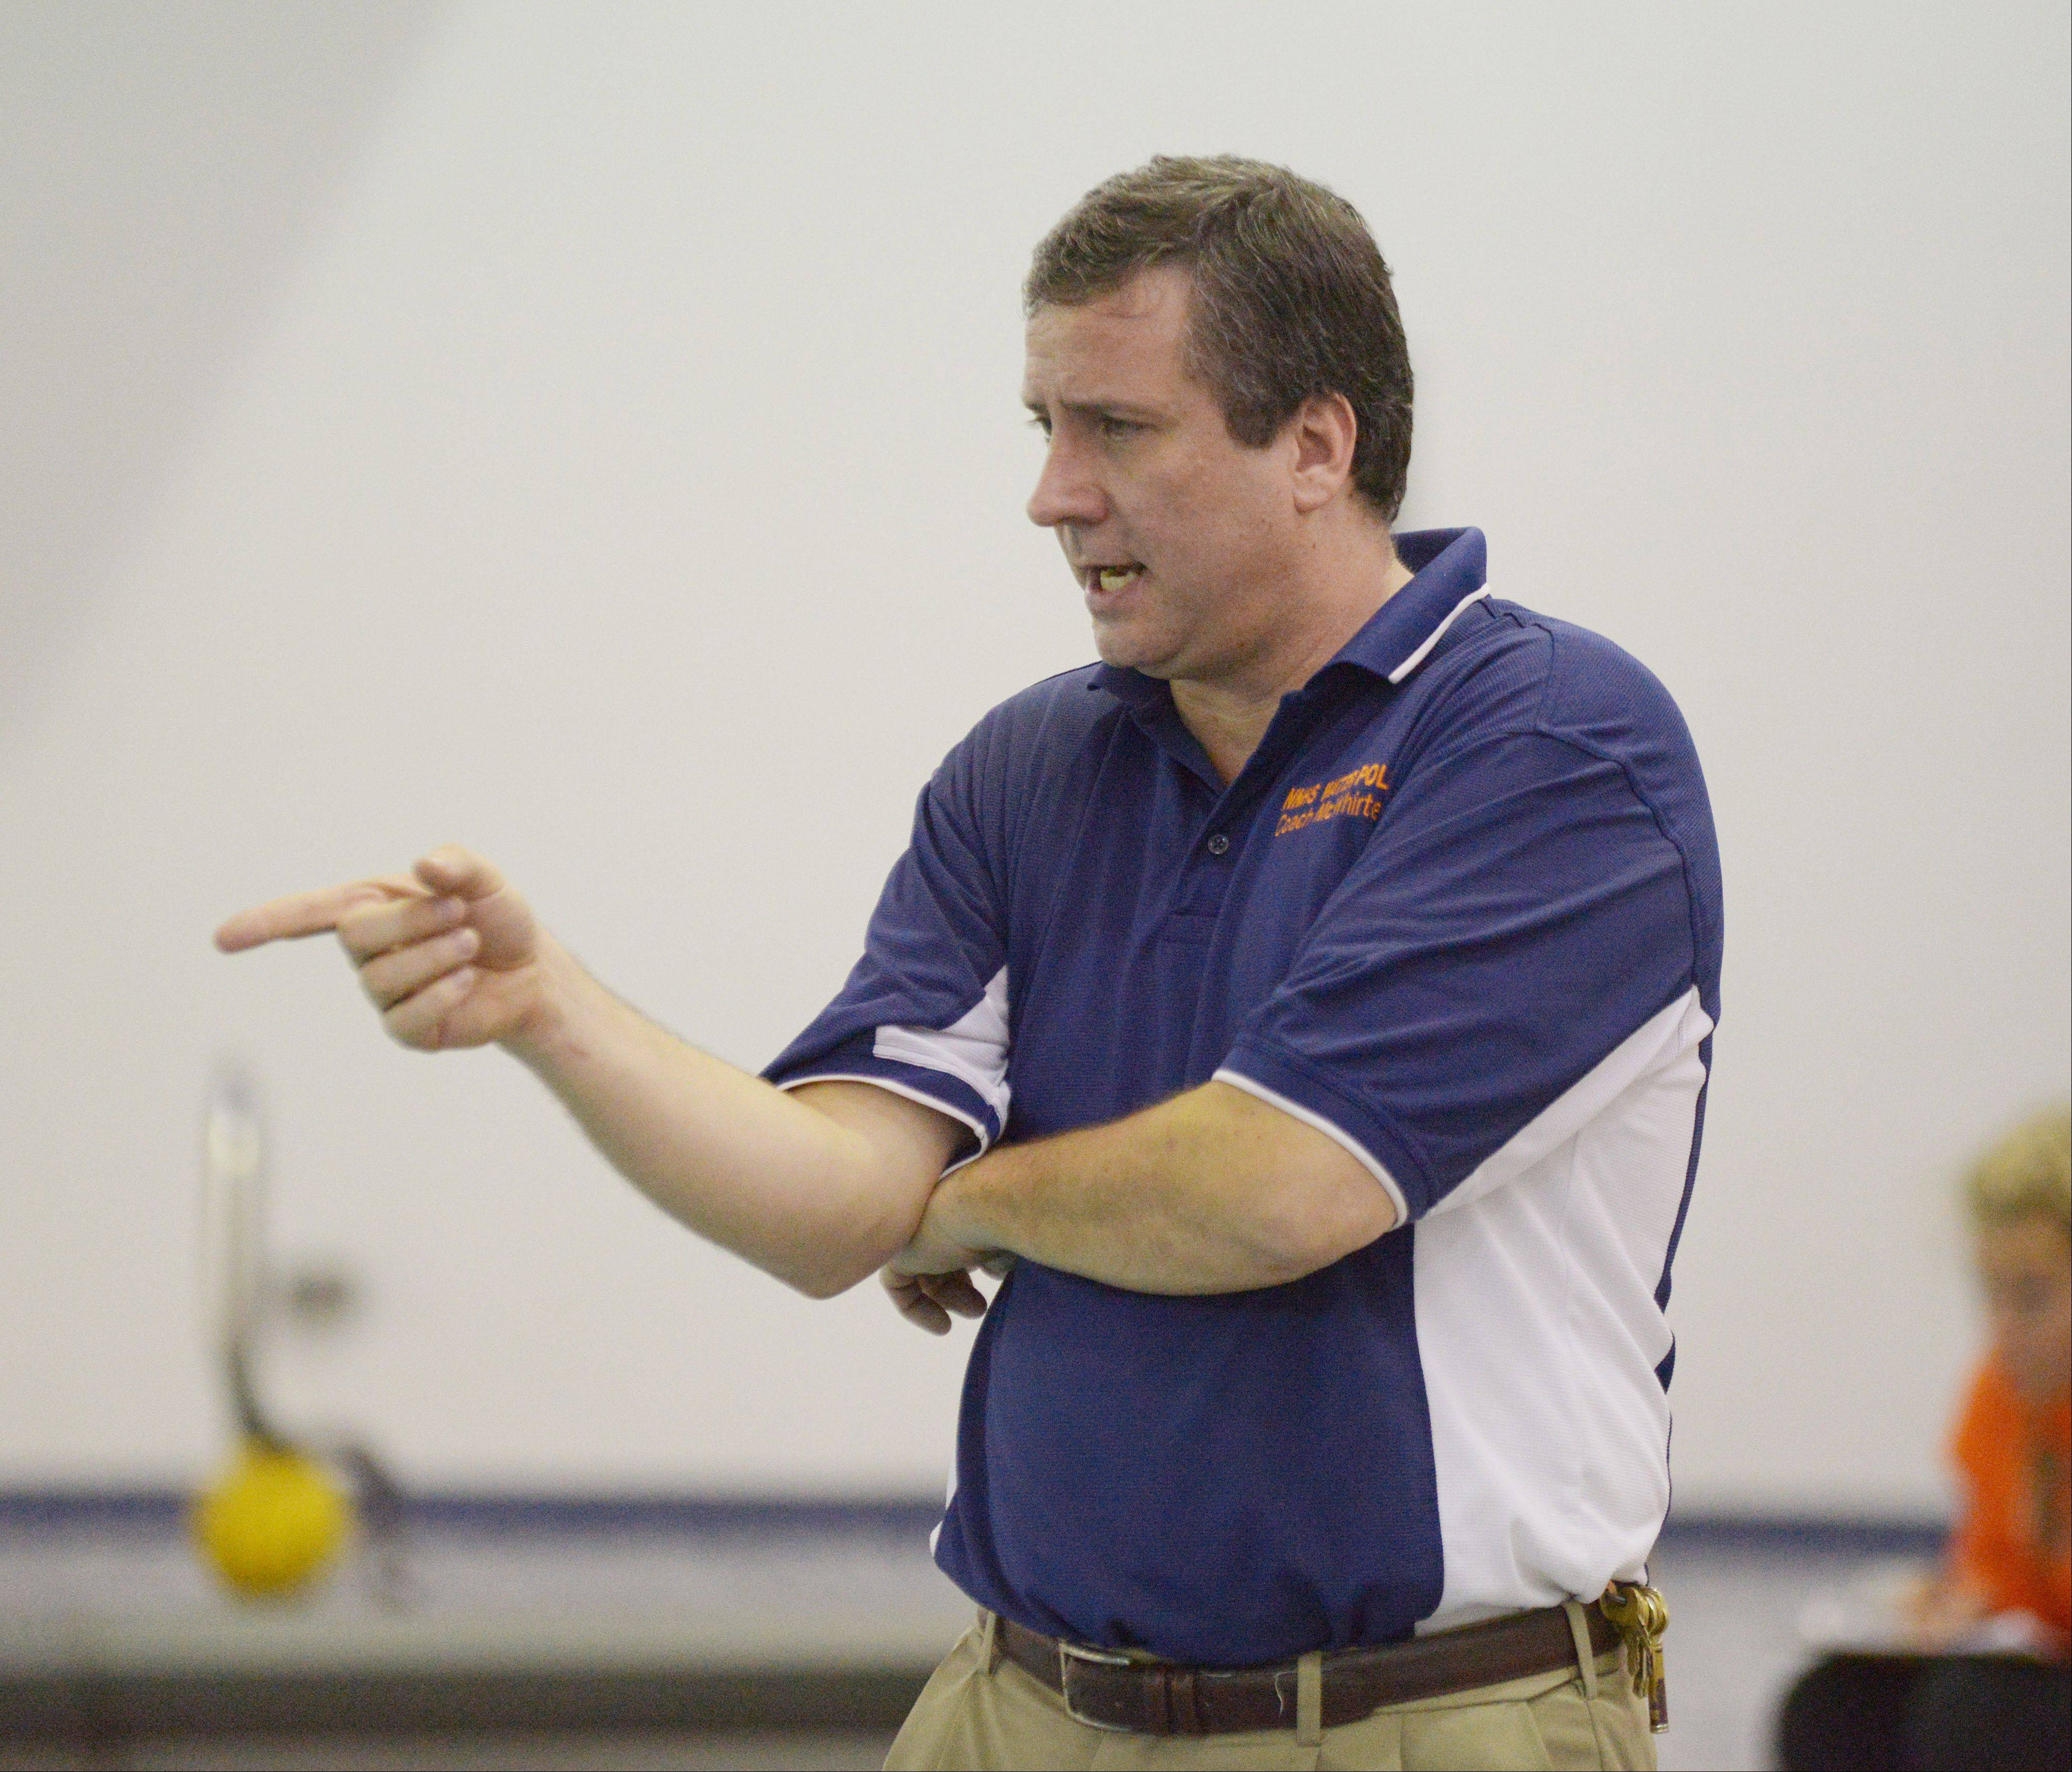 Naperville North girls water polo coach Andy McWhirter will be inducted into the Illinois Water Polo Hall of Fame in Elmhurst on May 28.